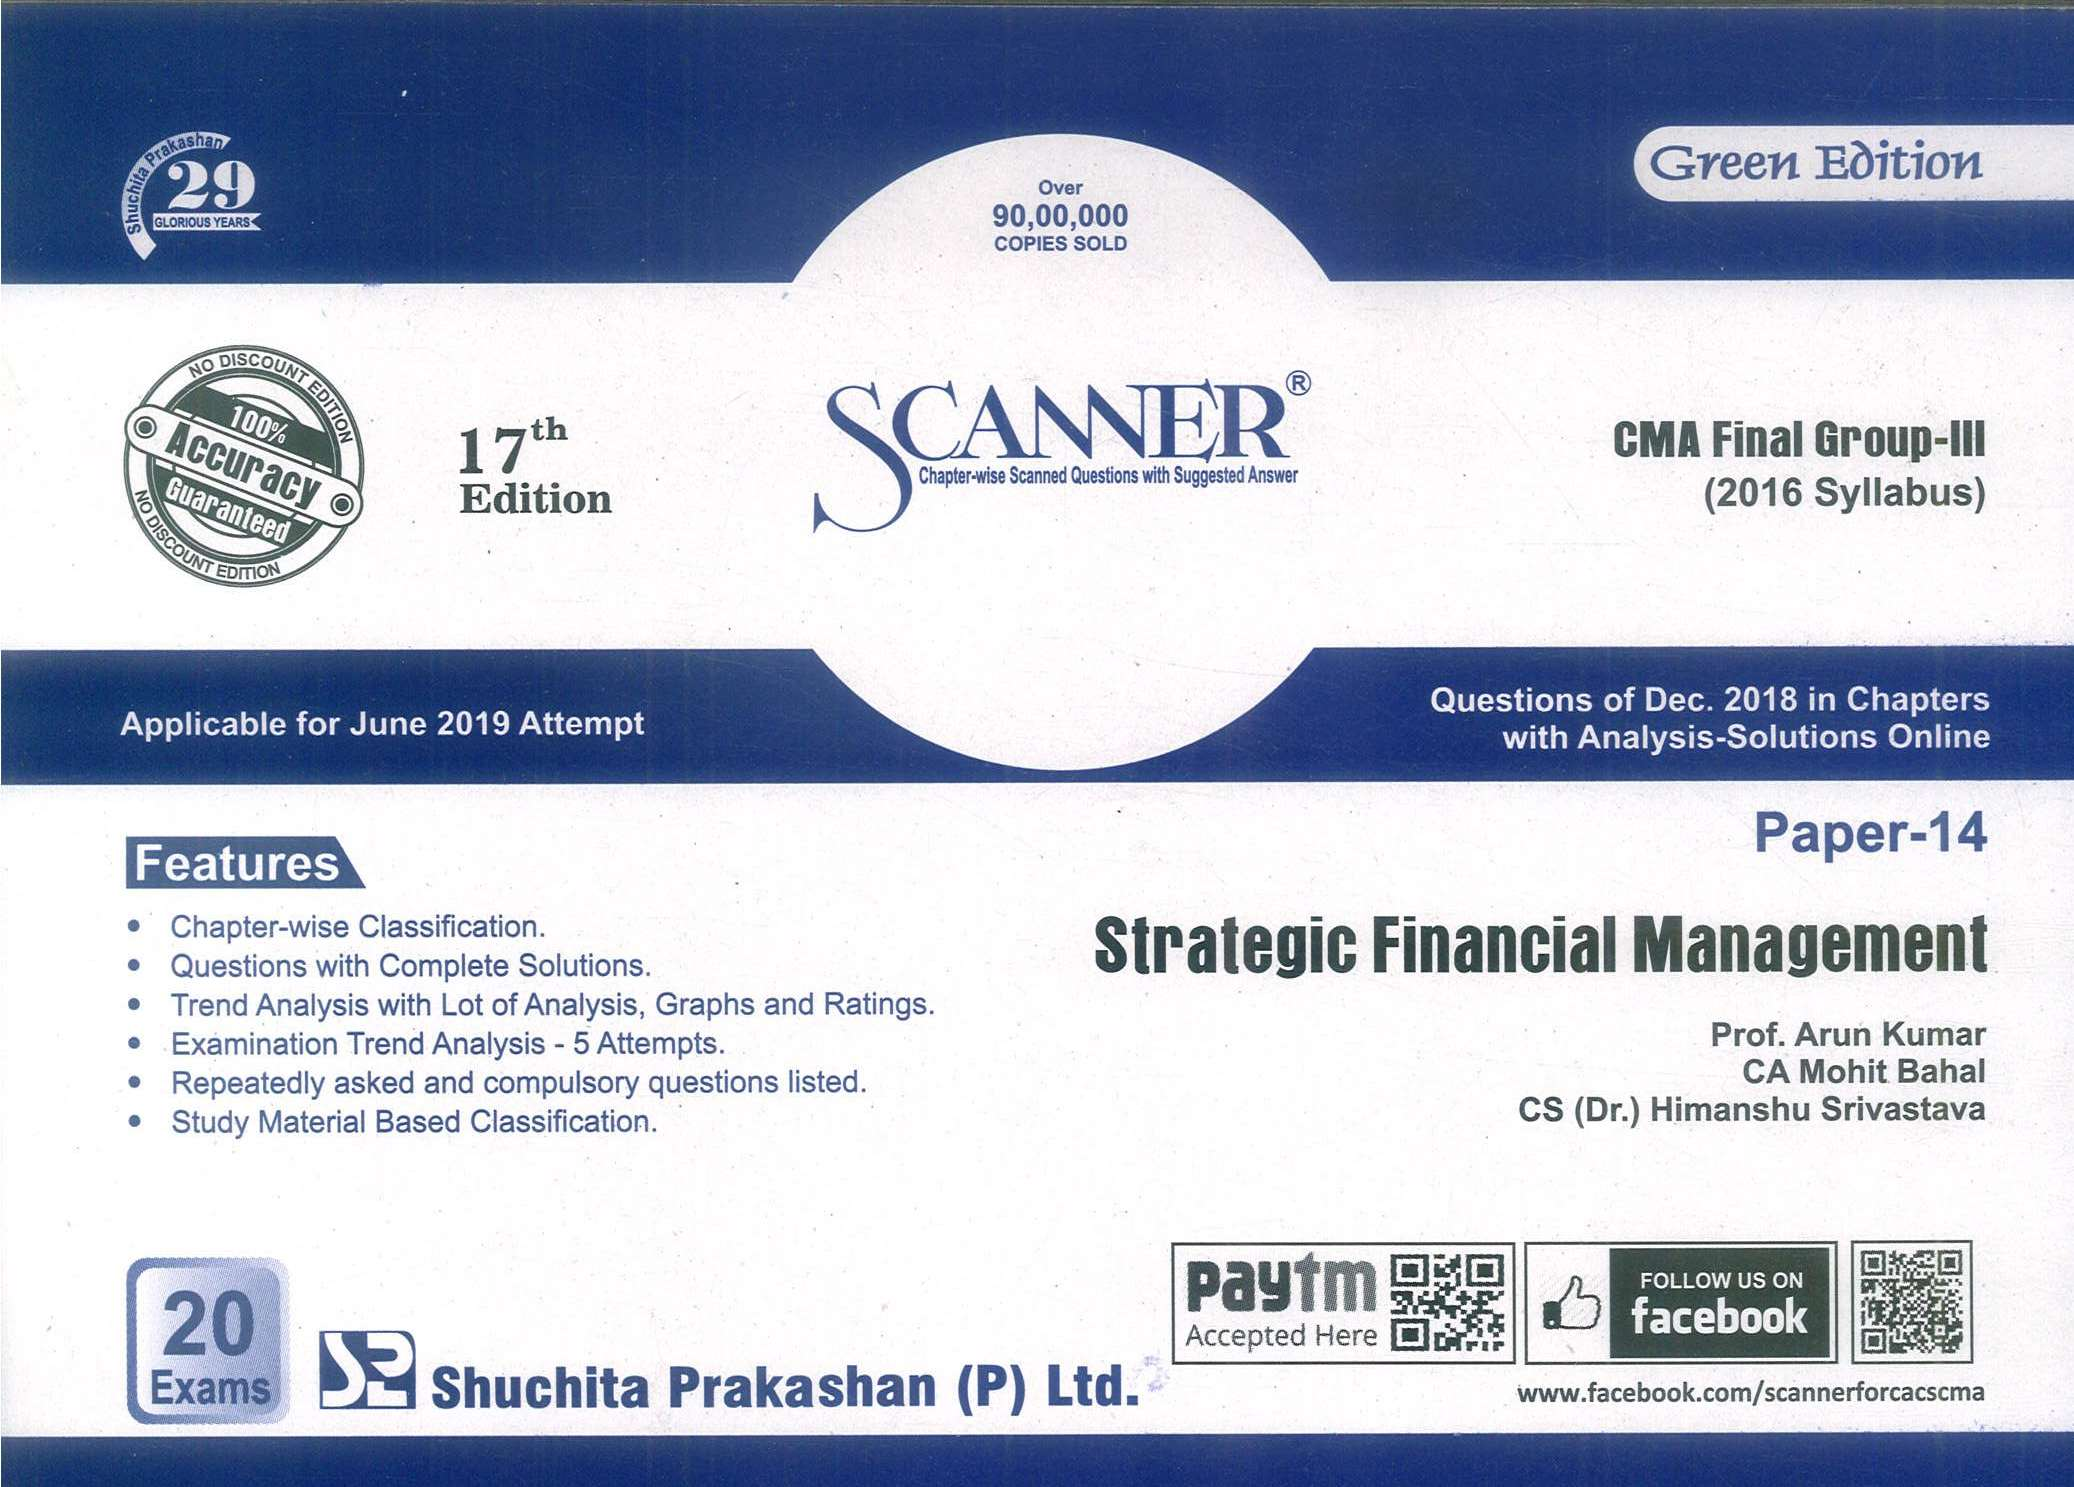 Shuchita Solved Scanner Strategic Financial Management for CMA Final Group III Paper 14 (2016 Syllabus) for June 2019 Exam by Prof. Arun Kumar and CA Raj Agarwal (Shuchita Prakashan) Edition 2019